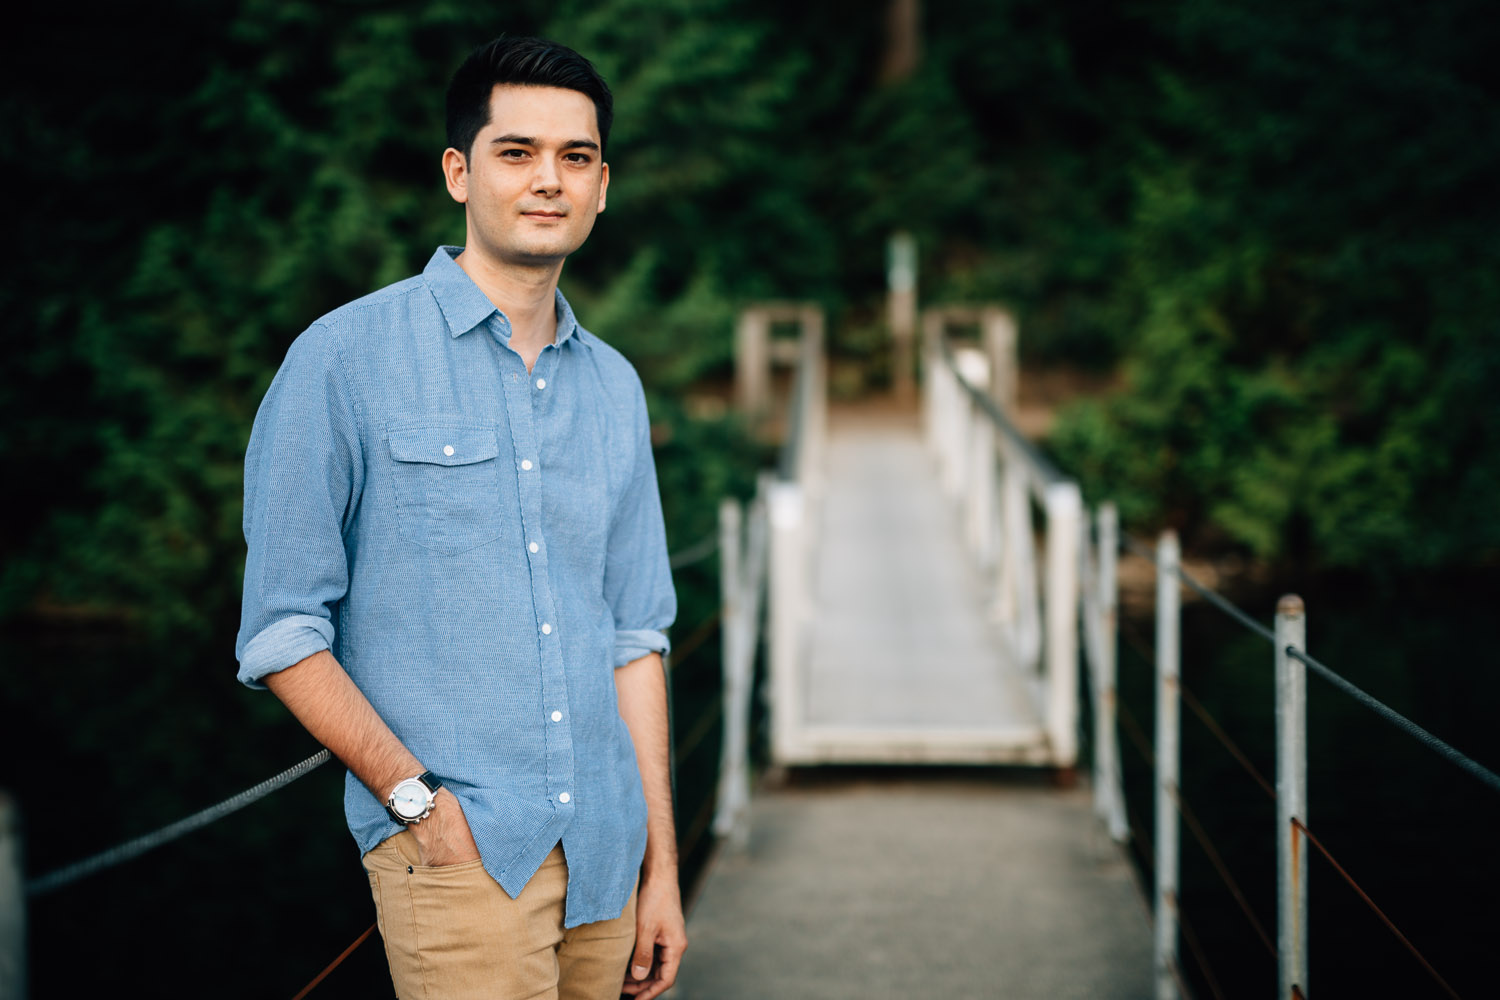 jack cusack portrait photography at sasamat lake in belcarra port moody in the summer